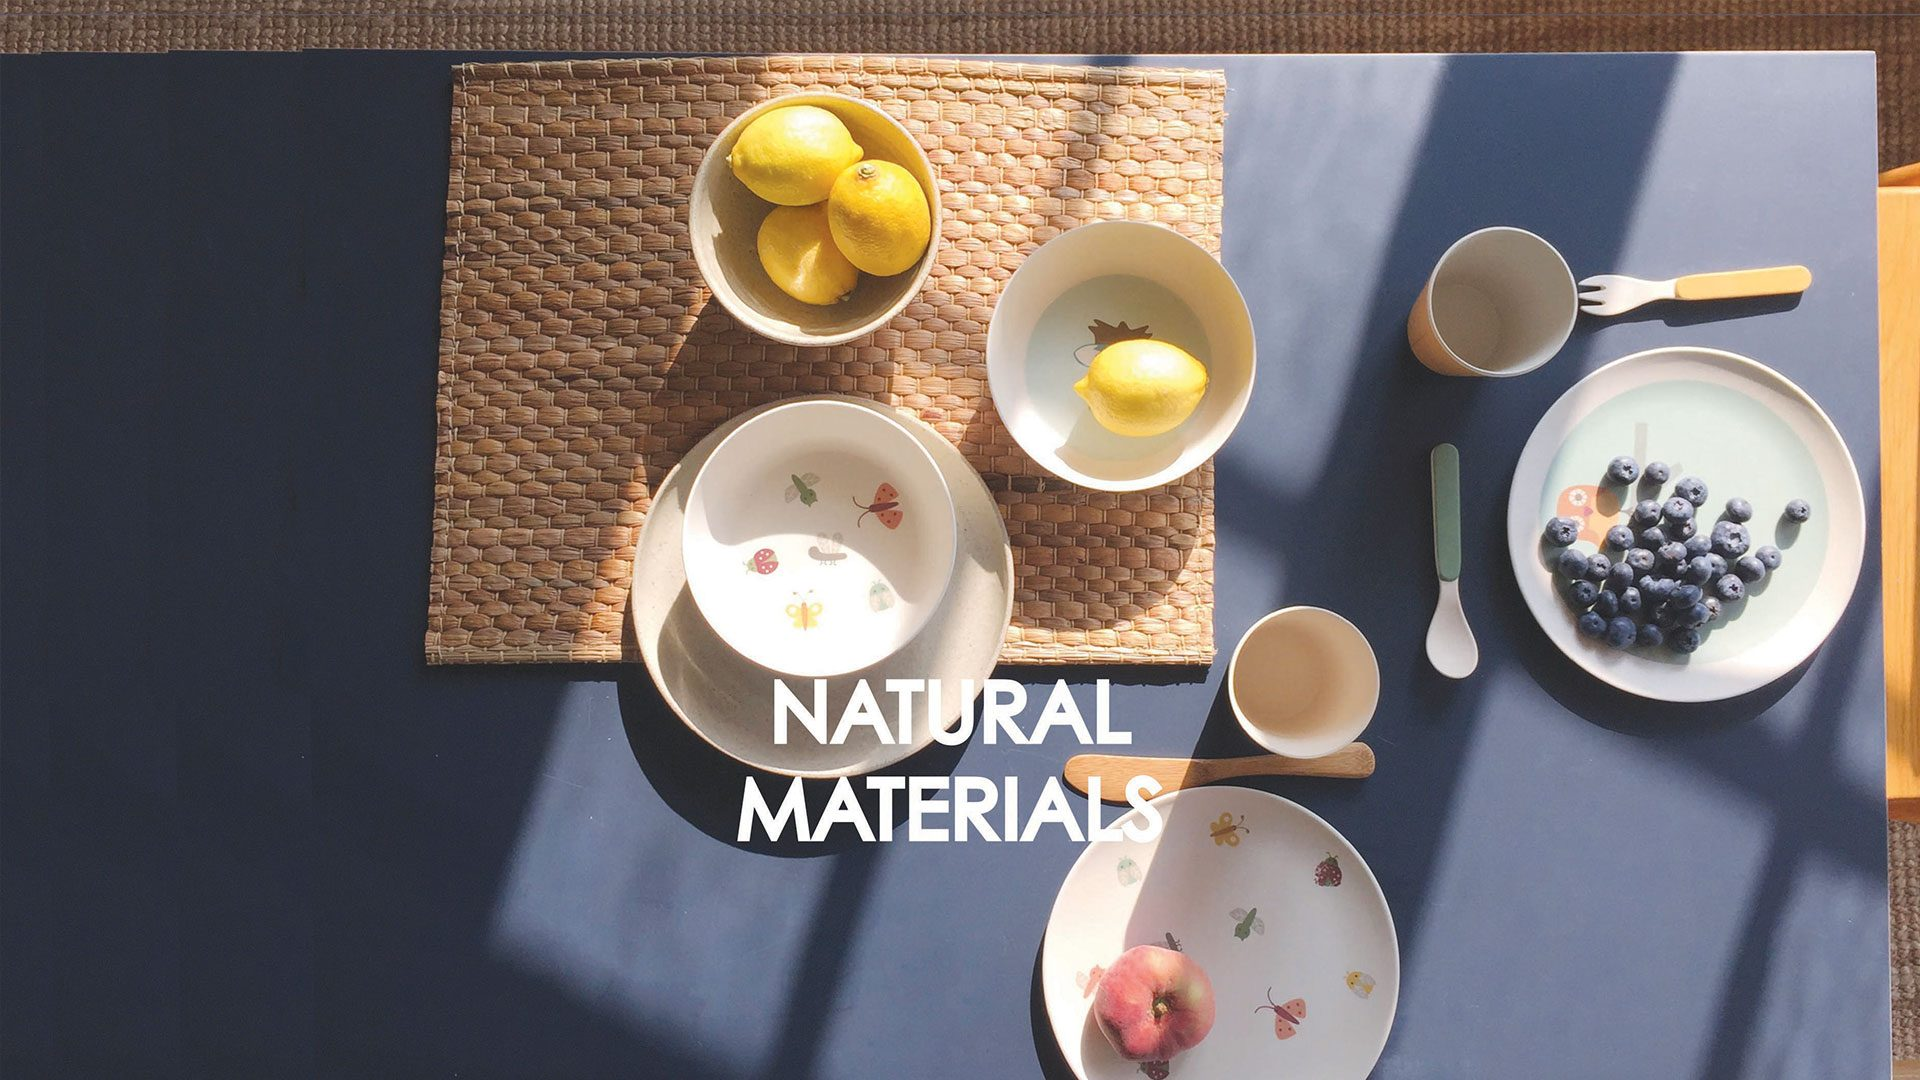 2-NATURAL-MATERIALS-with-dinner-set